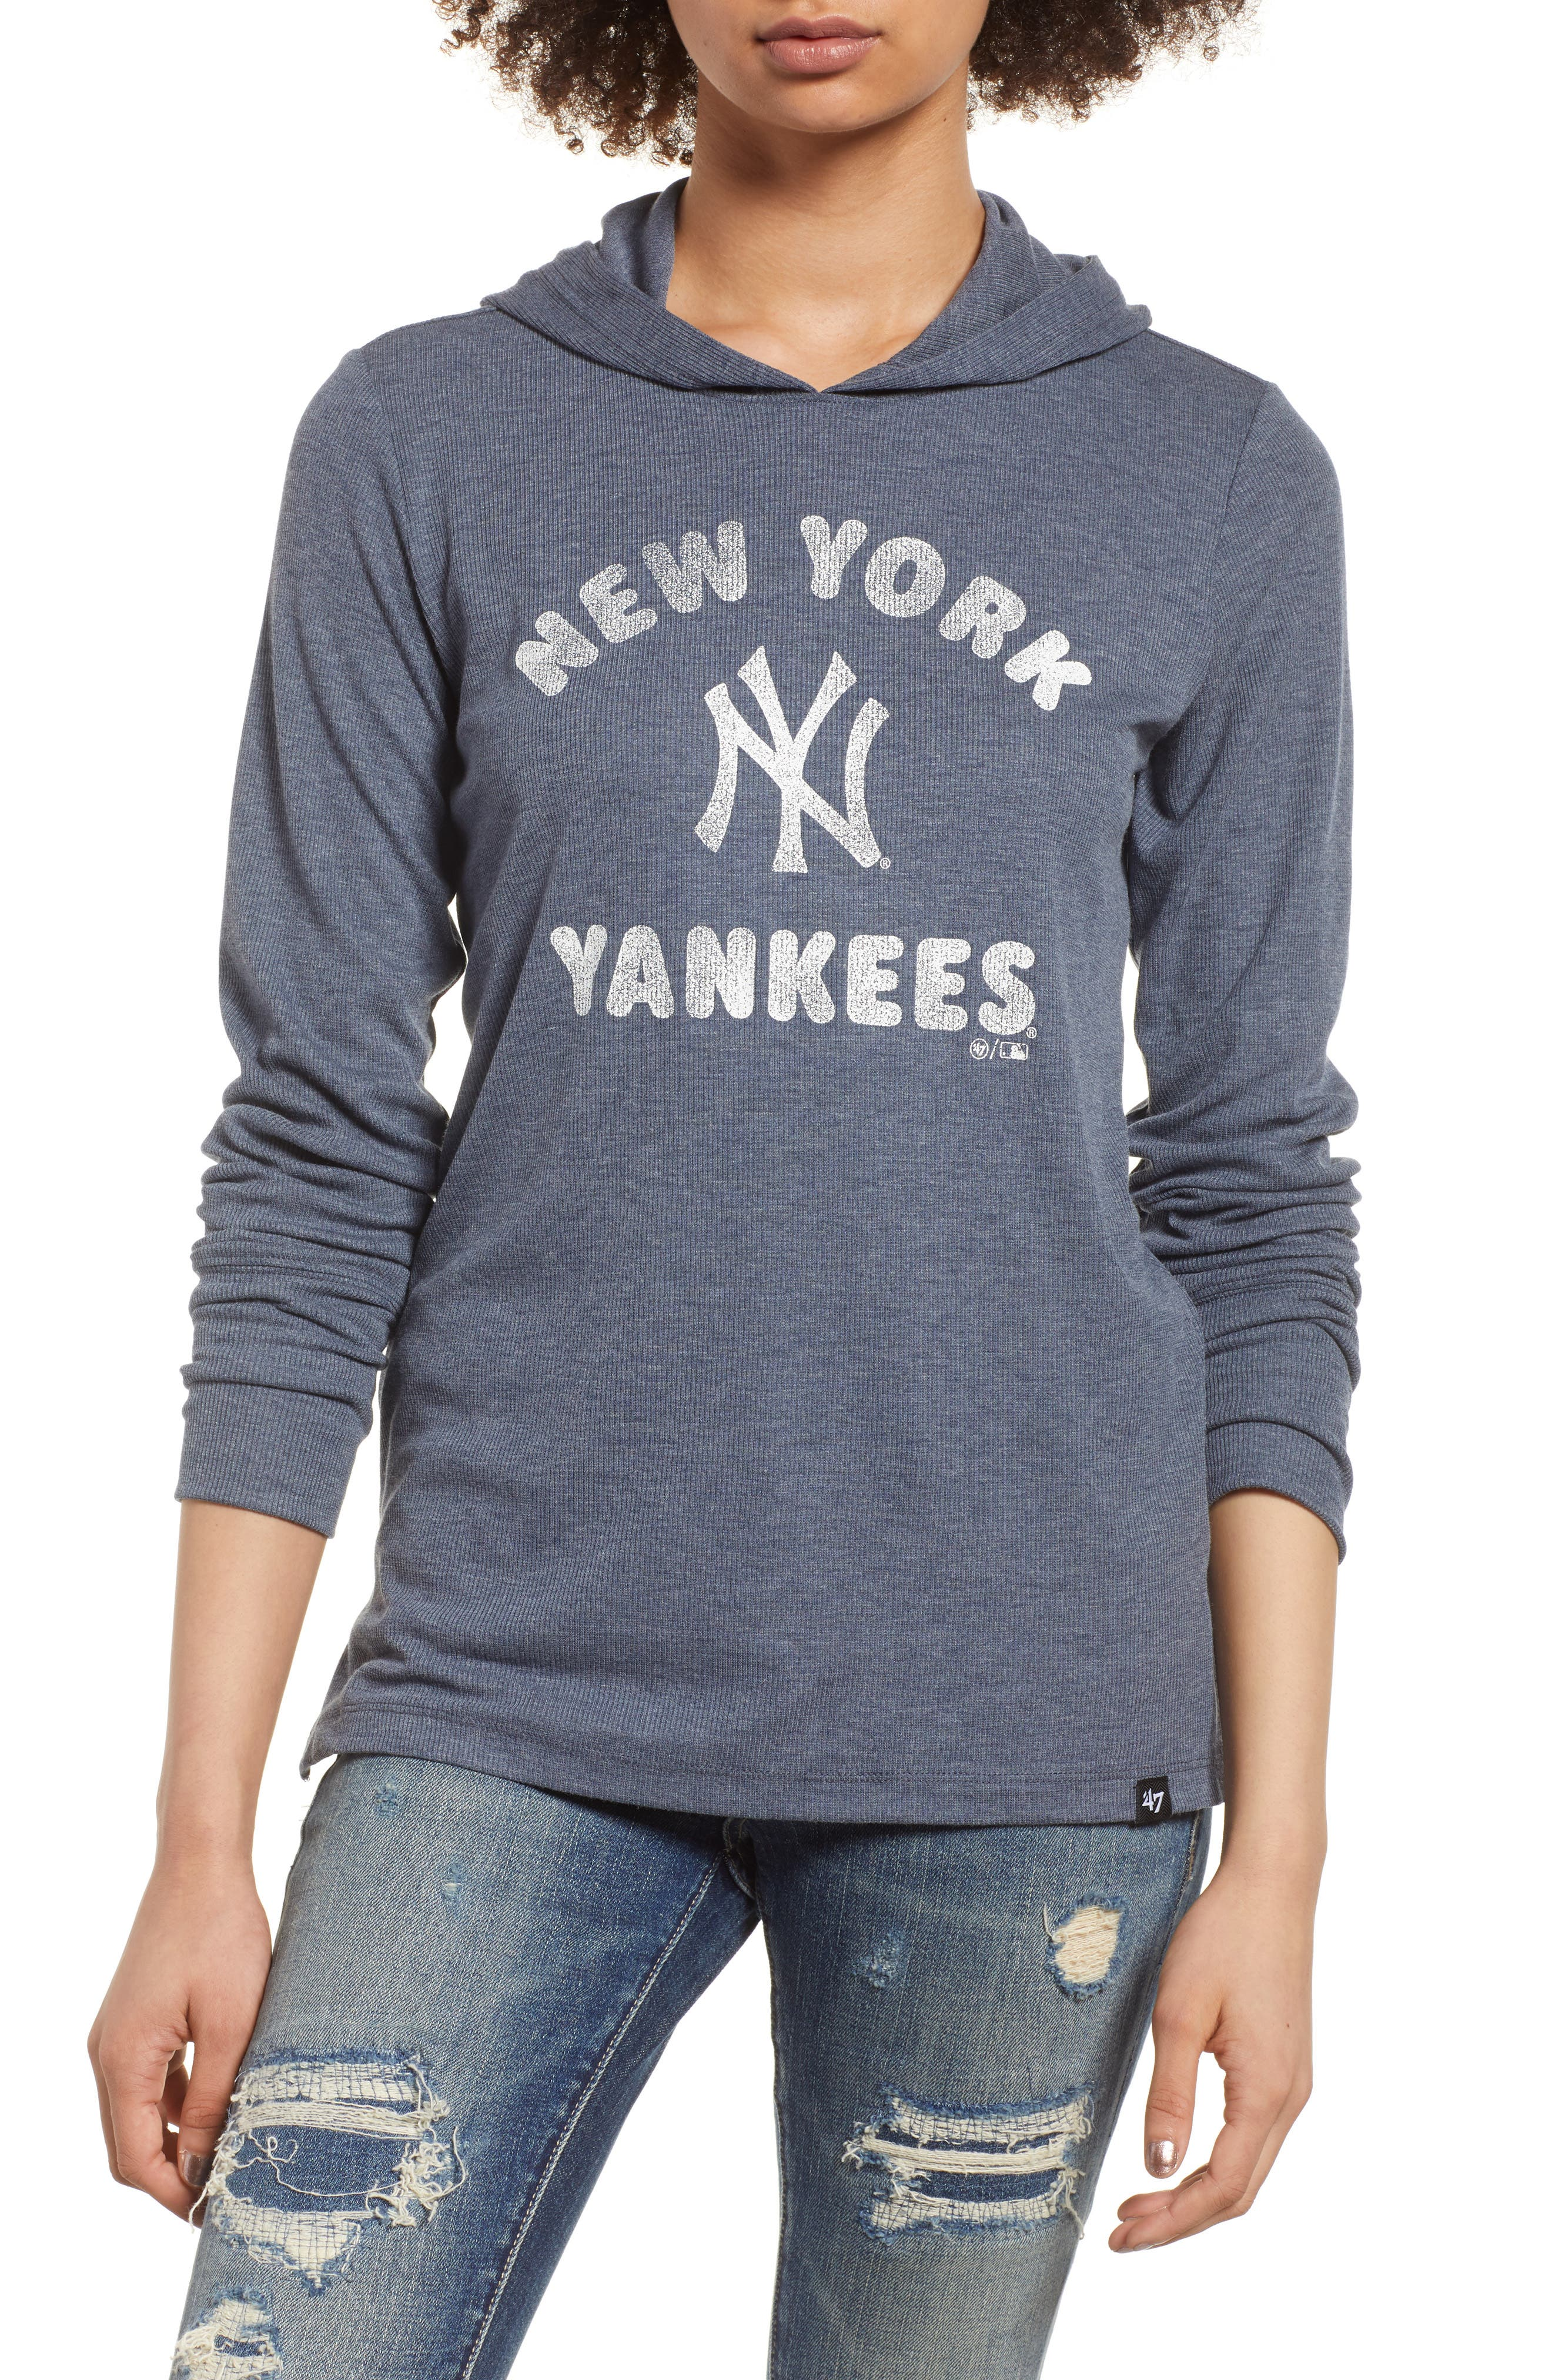 Campbell New York Yankees Rib Knit Hooded Top,                         Main,                         color, Midnight